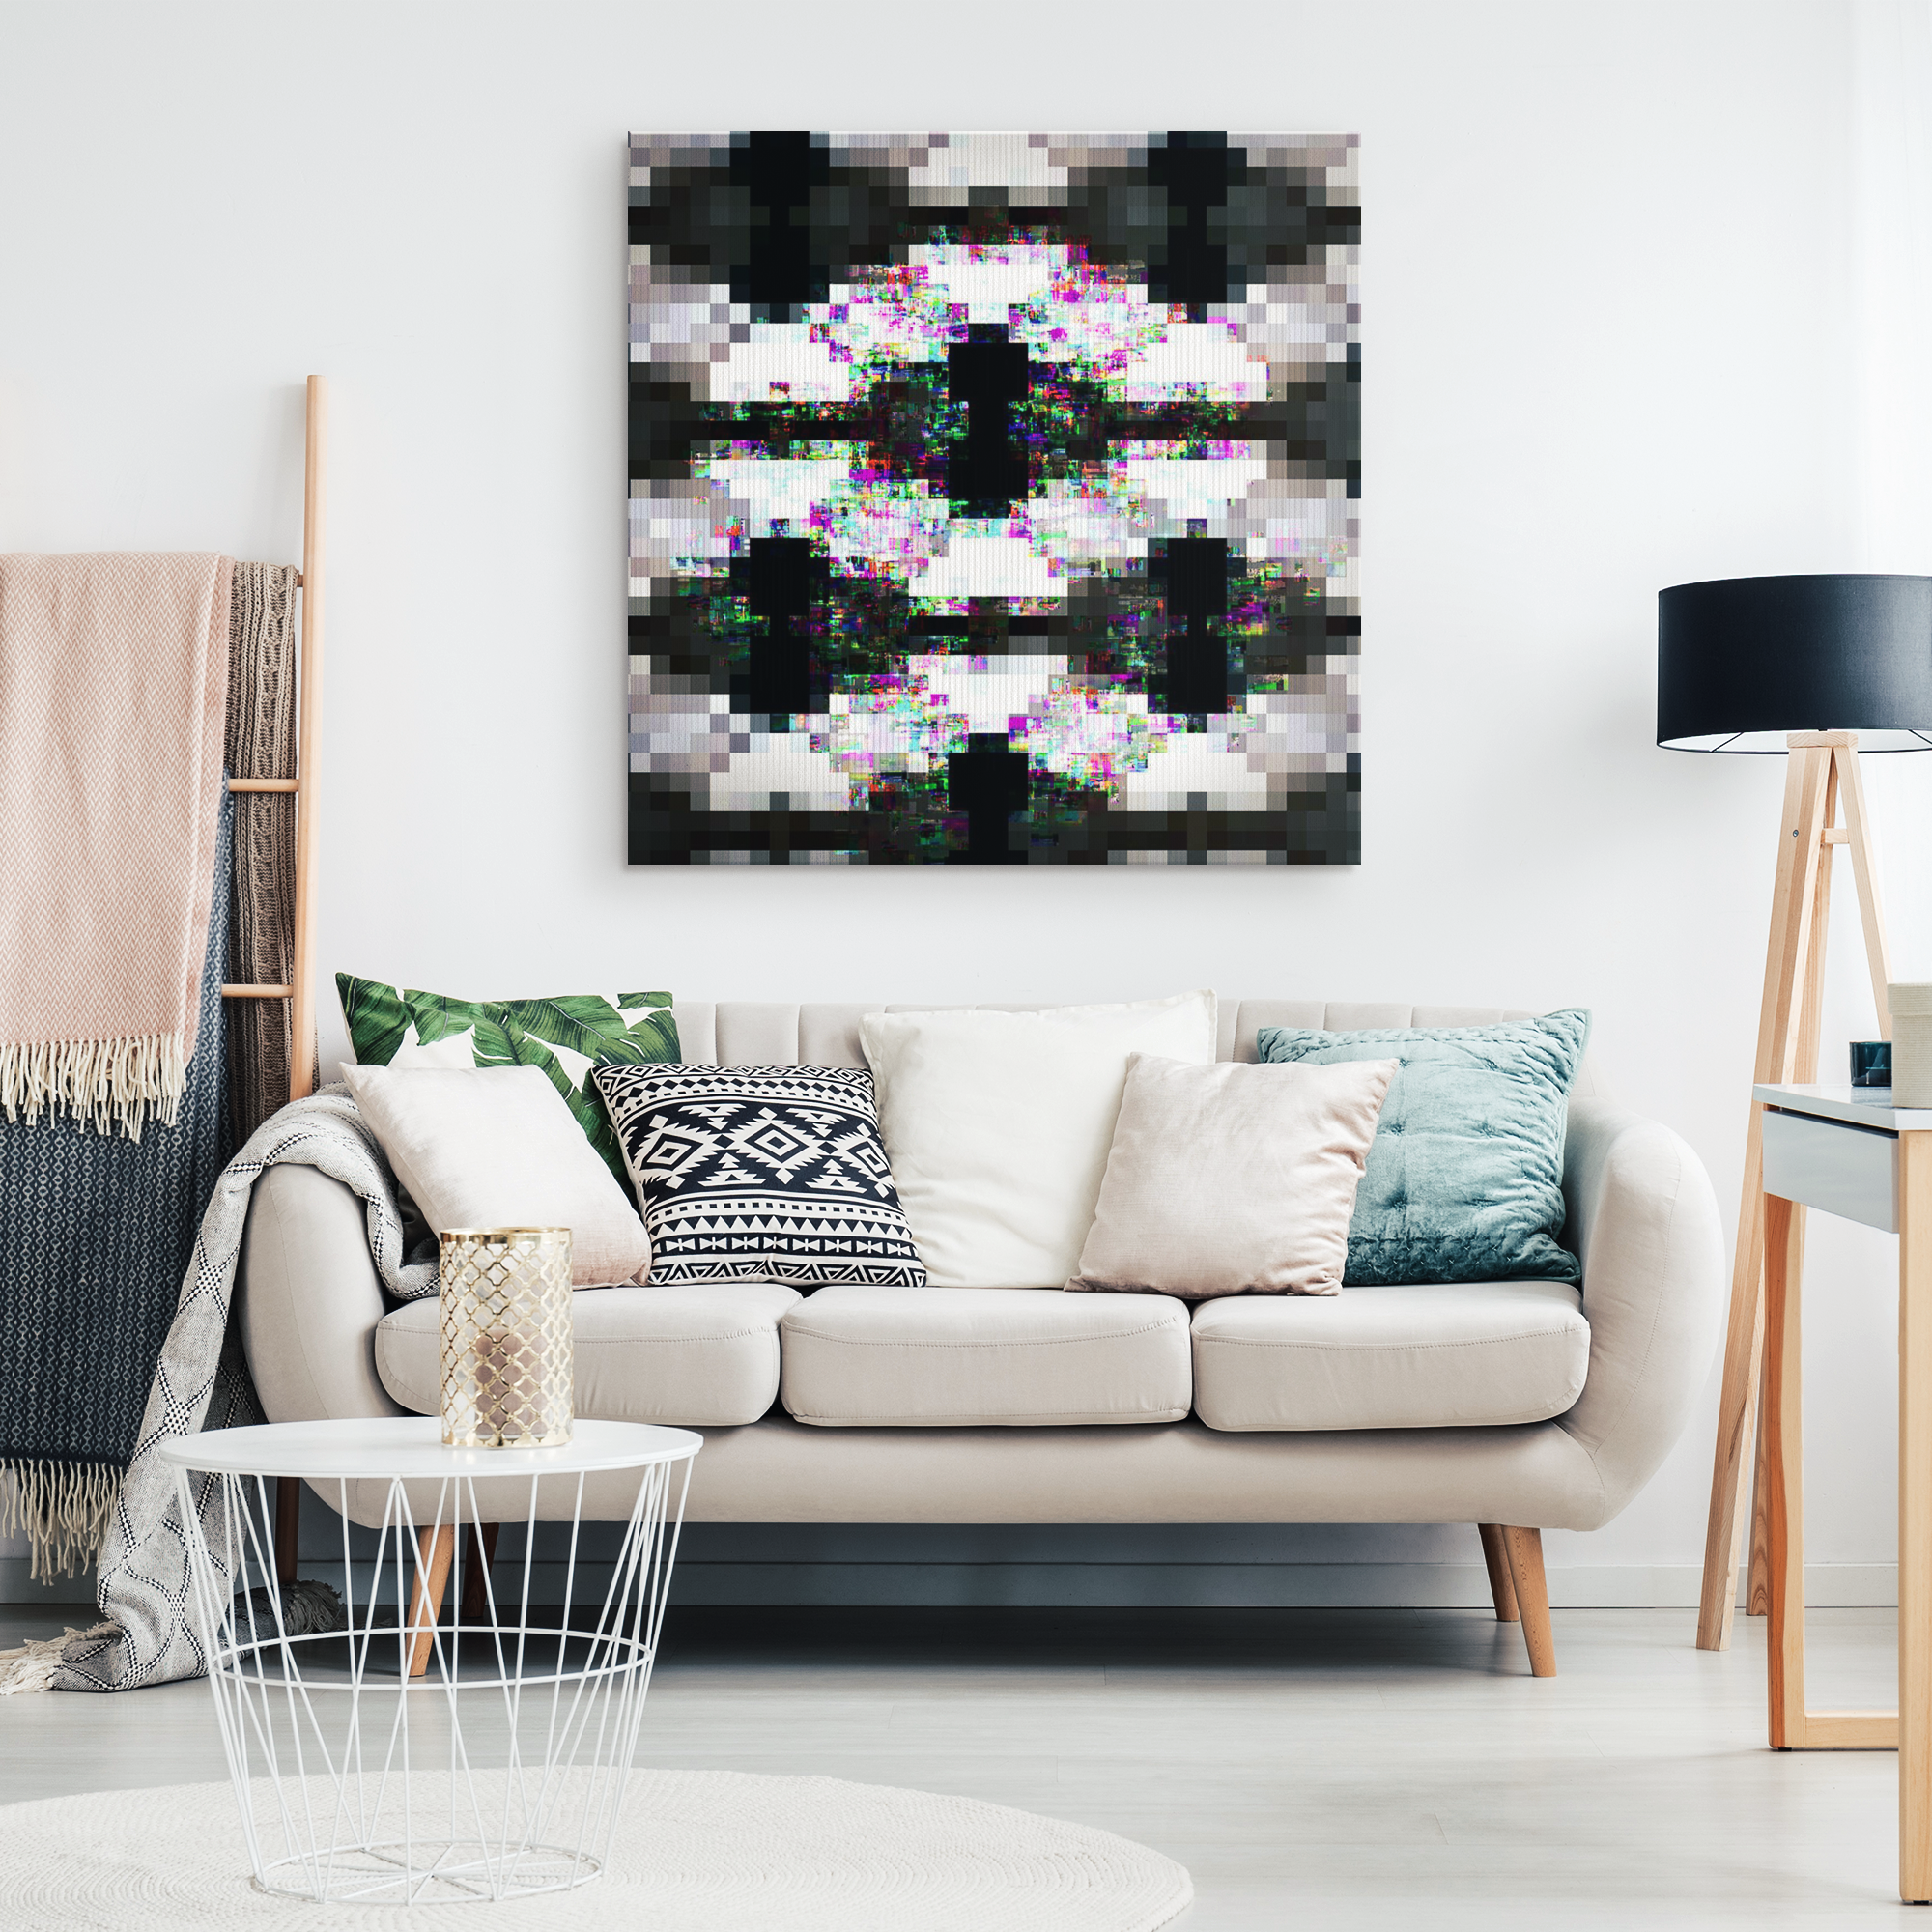 Into device - Canvas print - designed by @remlor - Remlor Art